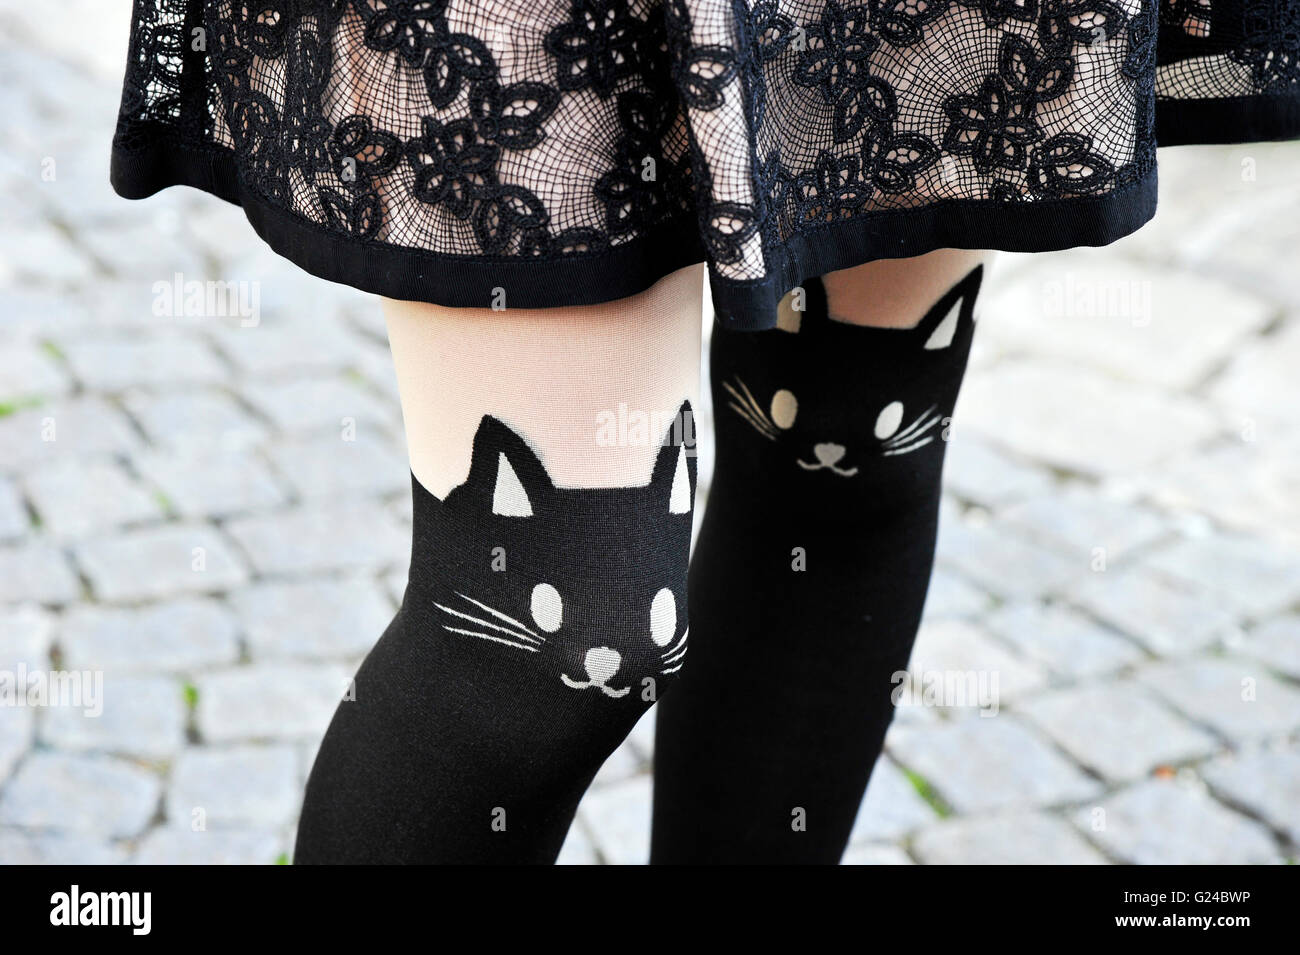 Cat tights on a guest, Paris fashion week - Stock Image